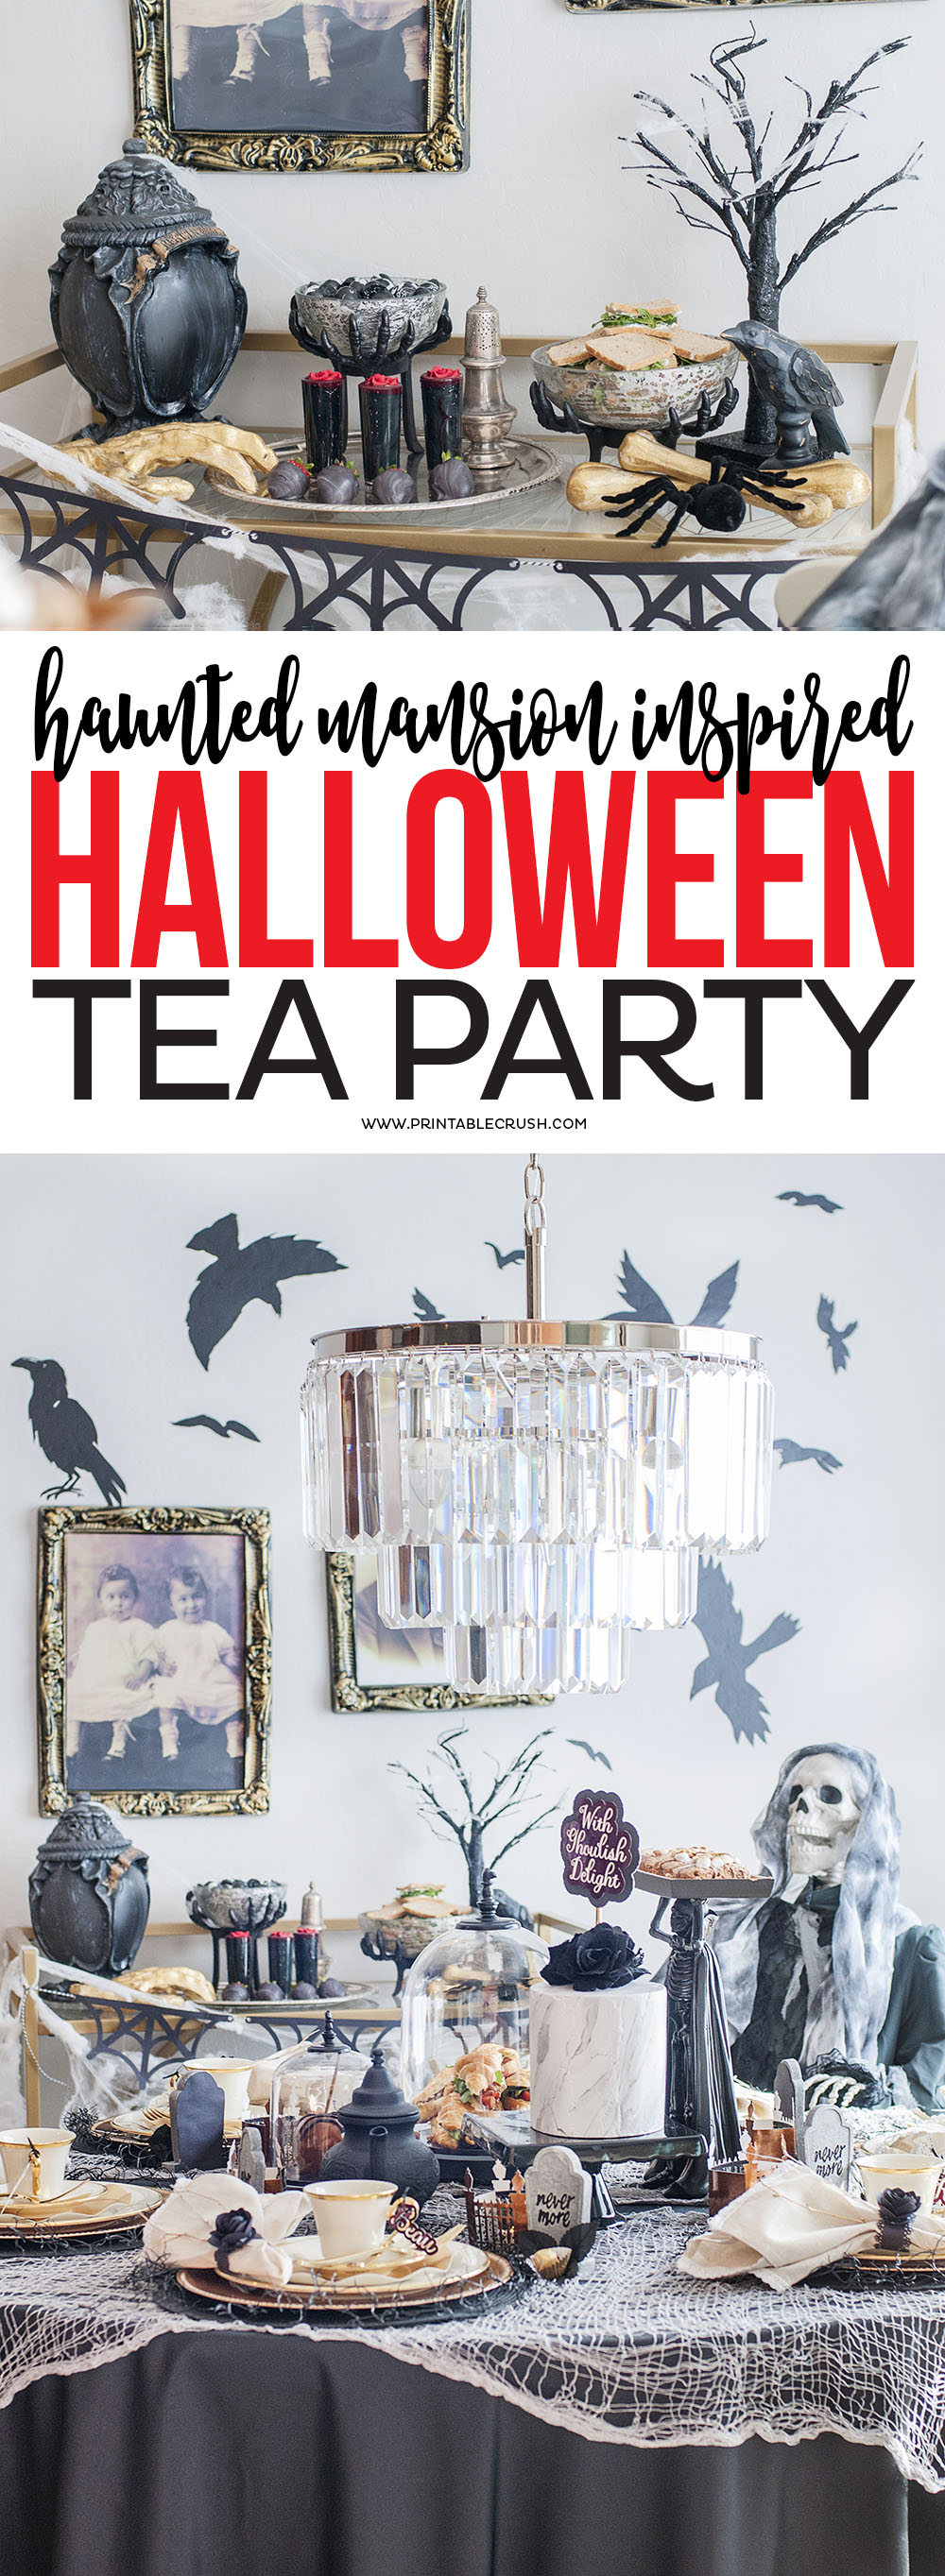 If you're a Disney fan, you'll love these Haunted Mansion Halloween Party Ideas! You'll find everything you need to throw an amazing Halloween party. via @printablecrush